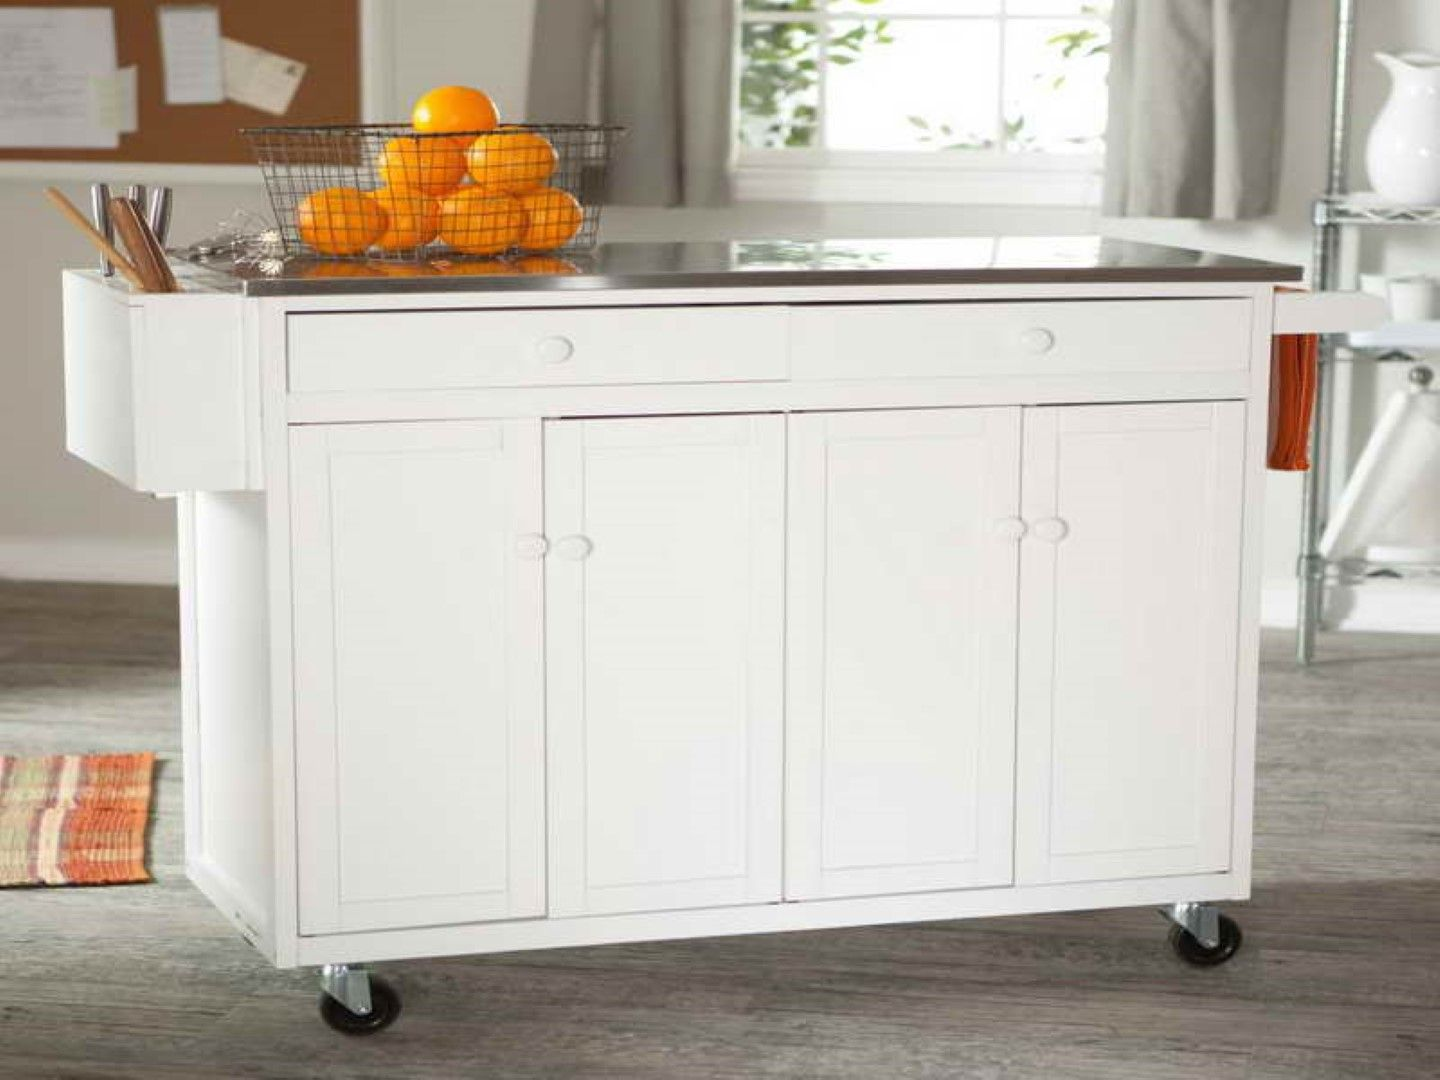 Kitchen Island Designs On Wheels - Kitchen wire fruits basket and stainless steel countertop feat beautiful modern portable kitchen island design